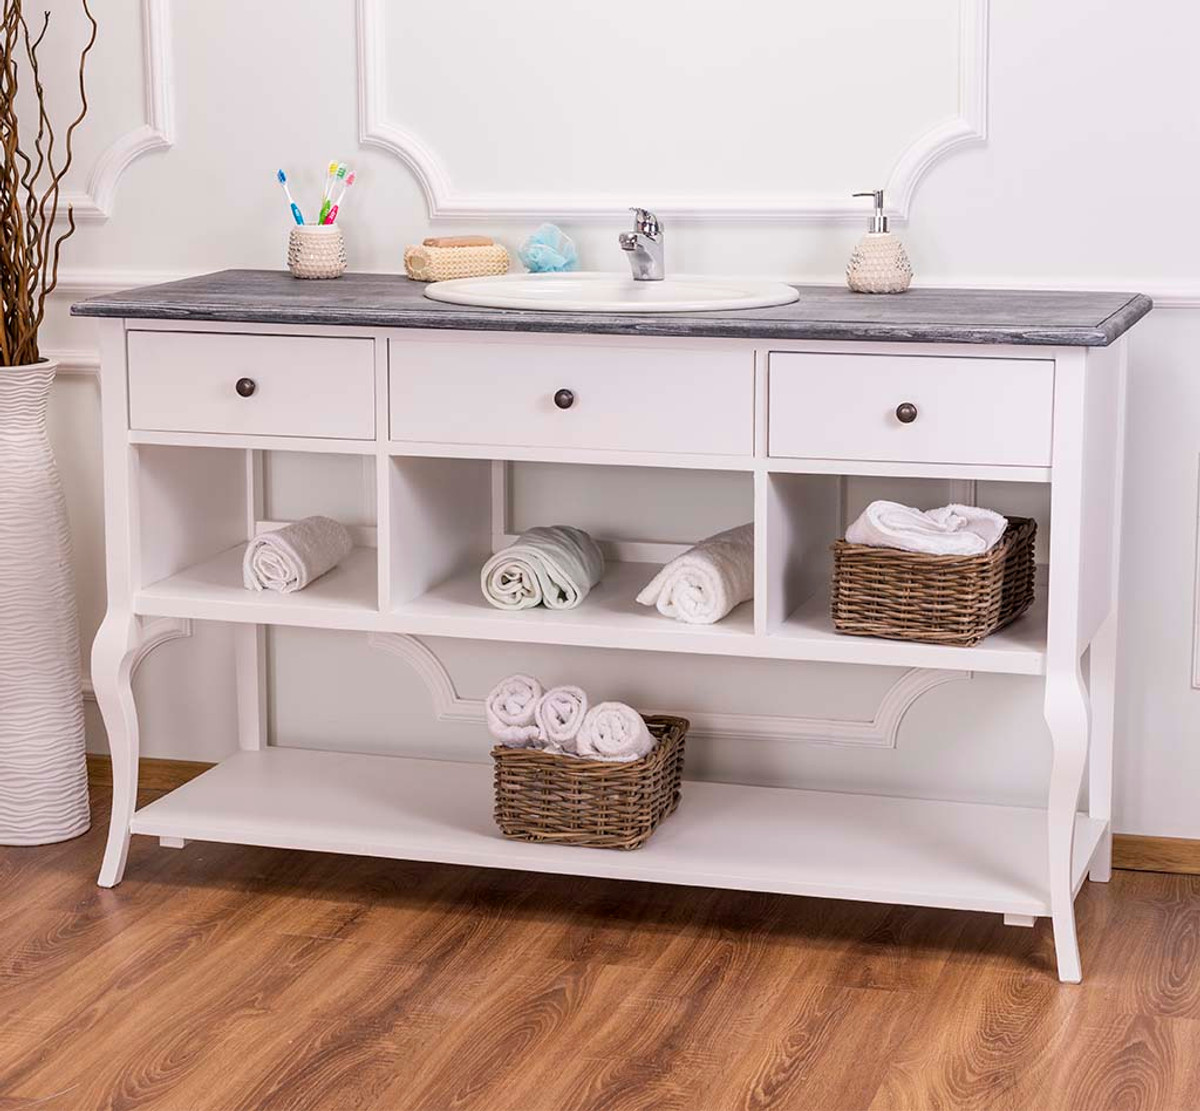 Badezimmer Country Style Casa Padrino Country Style Lavabo Lavabo Senza Lavabo Grigio Bianco Mobile Bagno